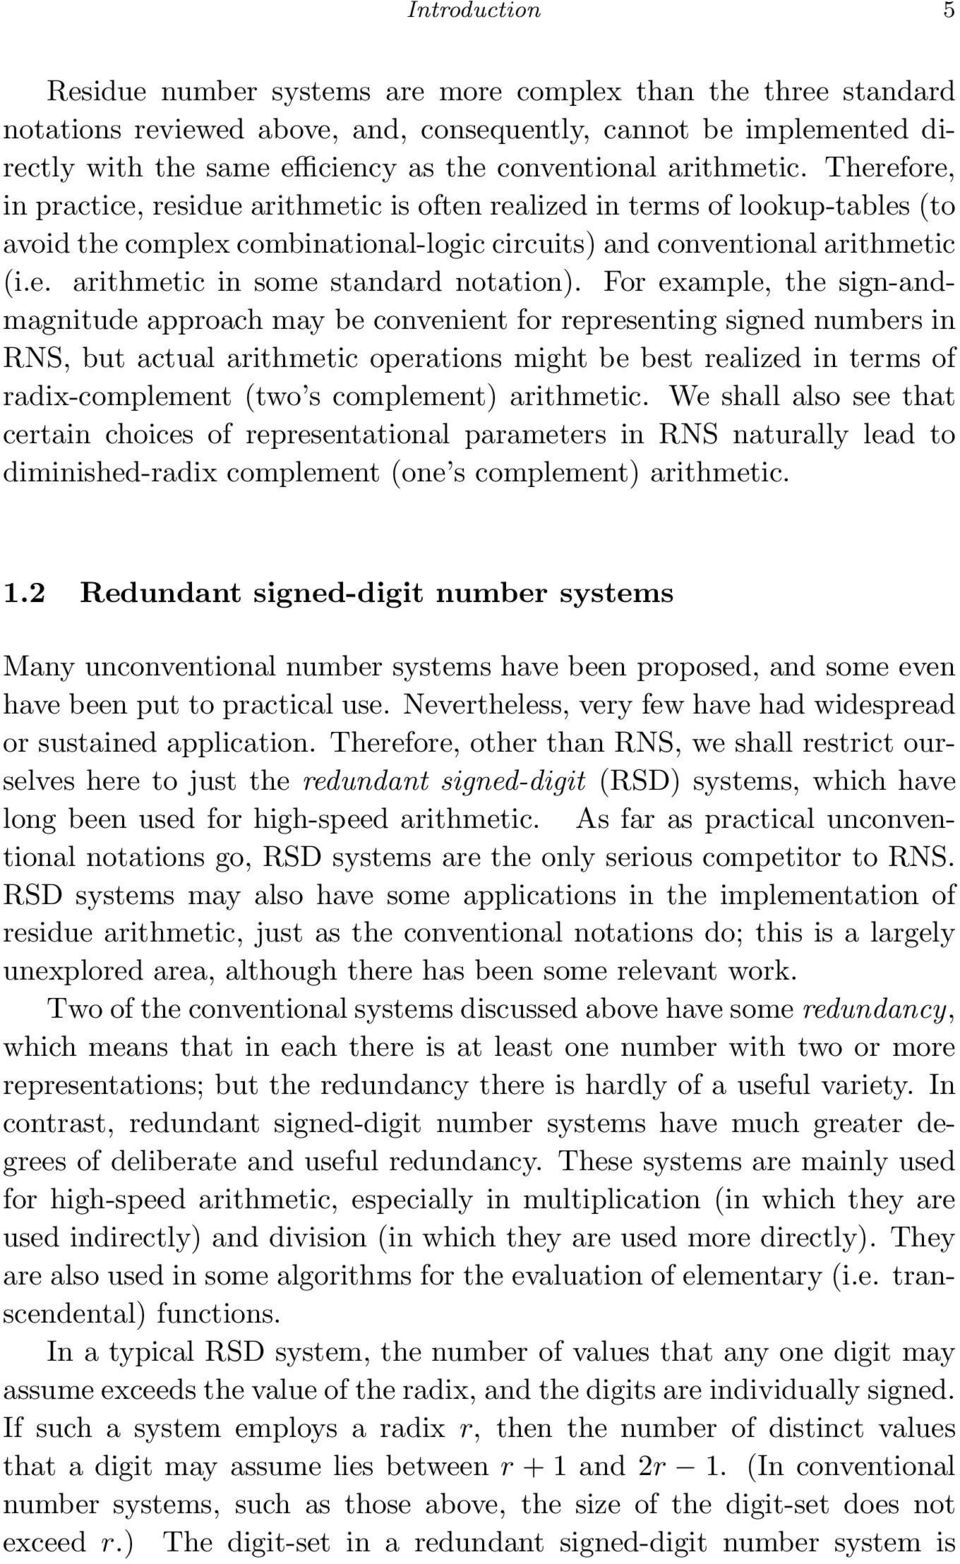 For example, the sign-andmagnitude approach may be convenient for representing signed numbers in RNS, but actual arithmetic operations might be best realized in terms of radix-complement (two s